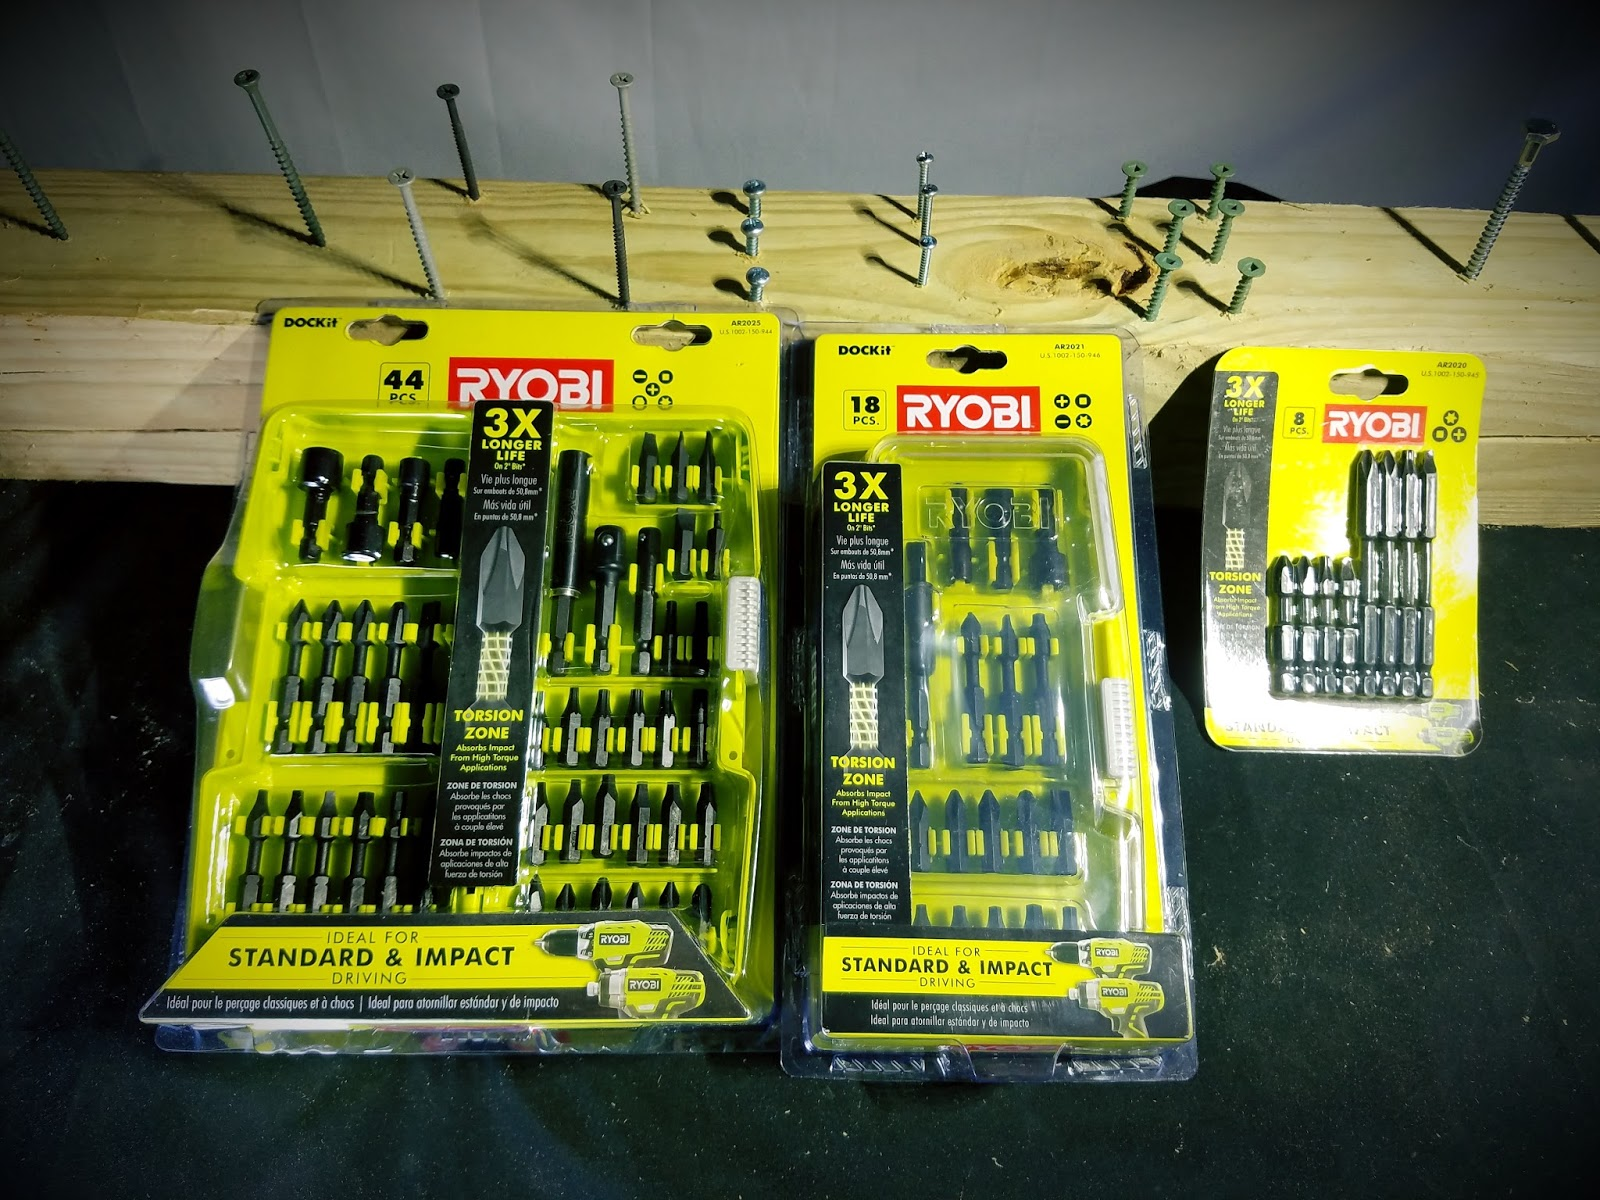 Tool Review Zone Ryobi Introduces Three New Impact Driver Bit Sets For An Affordable Price